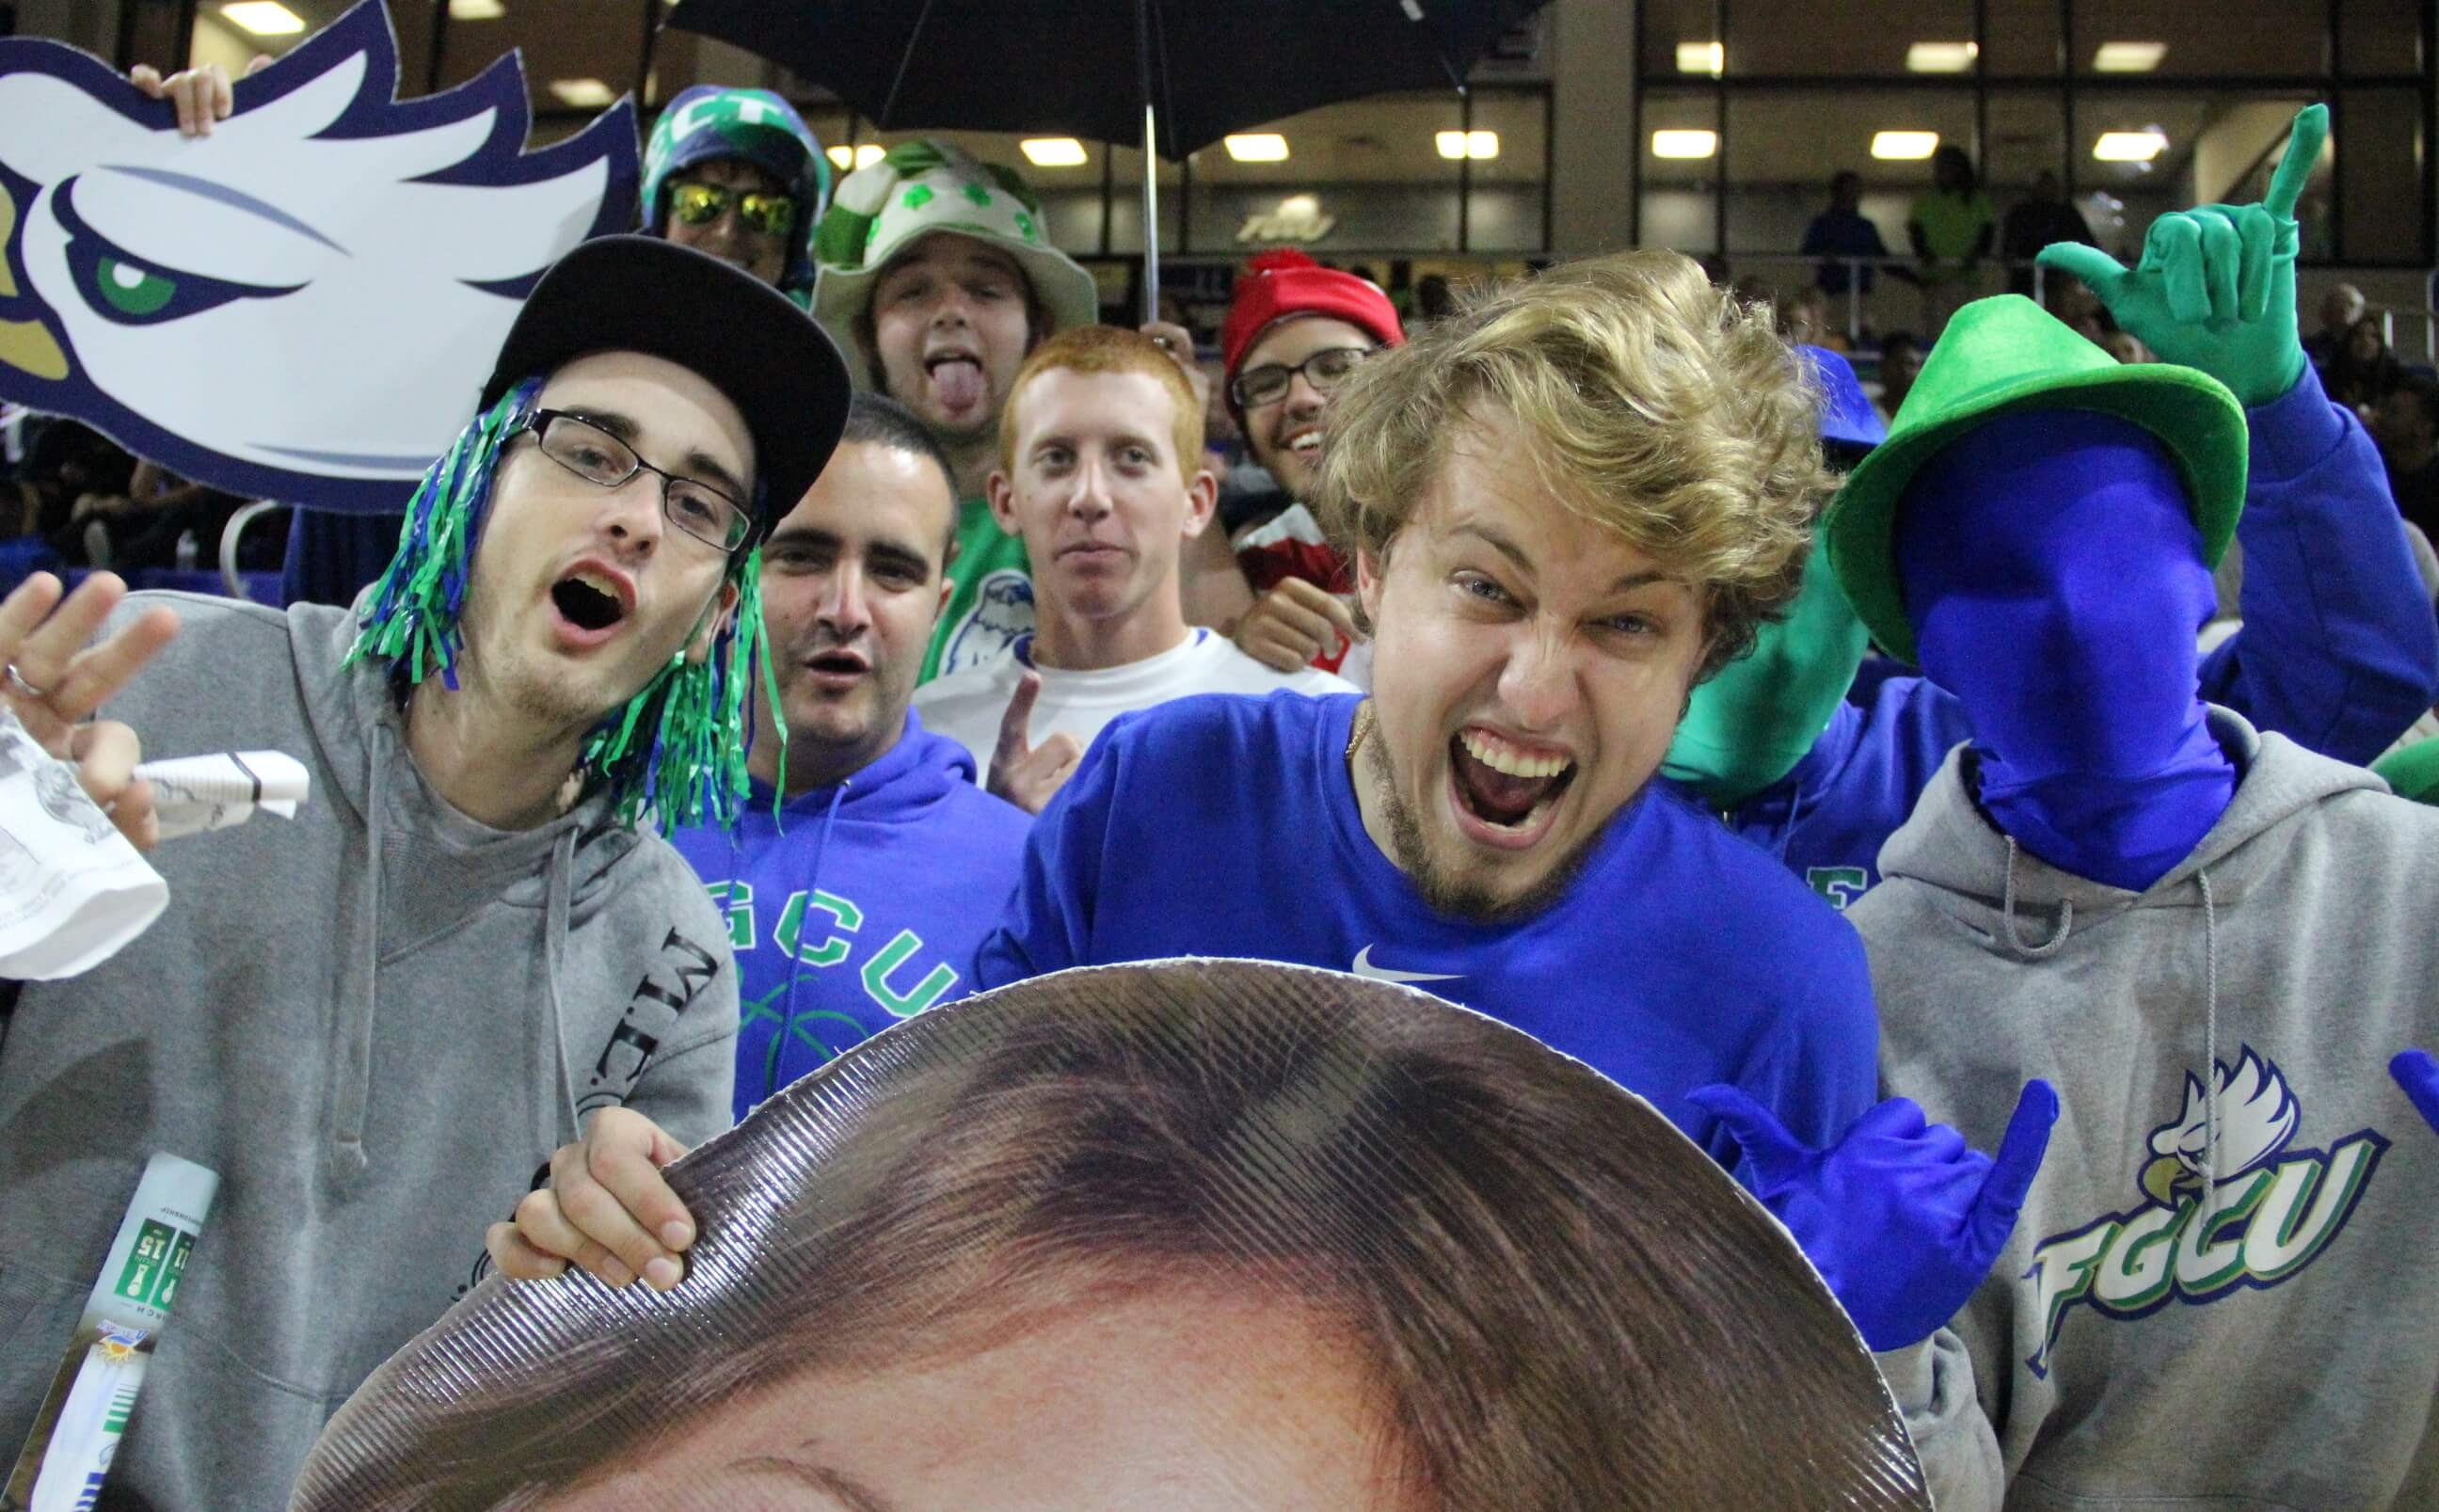 For FGCU's Dirty Birds, traditions start now